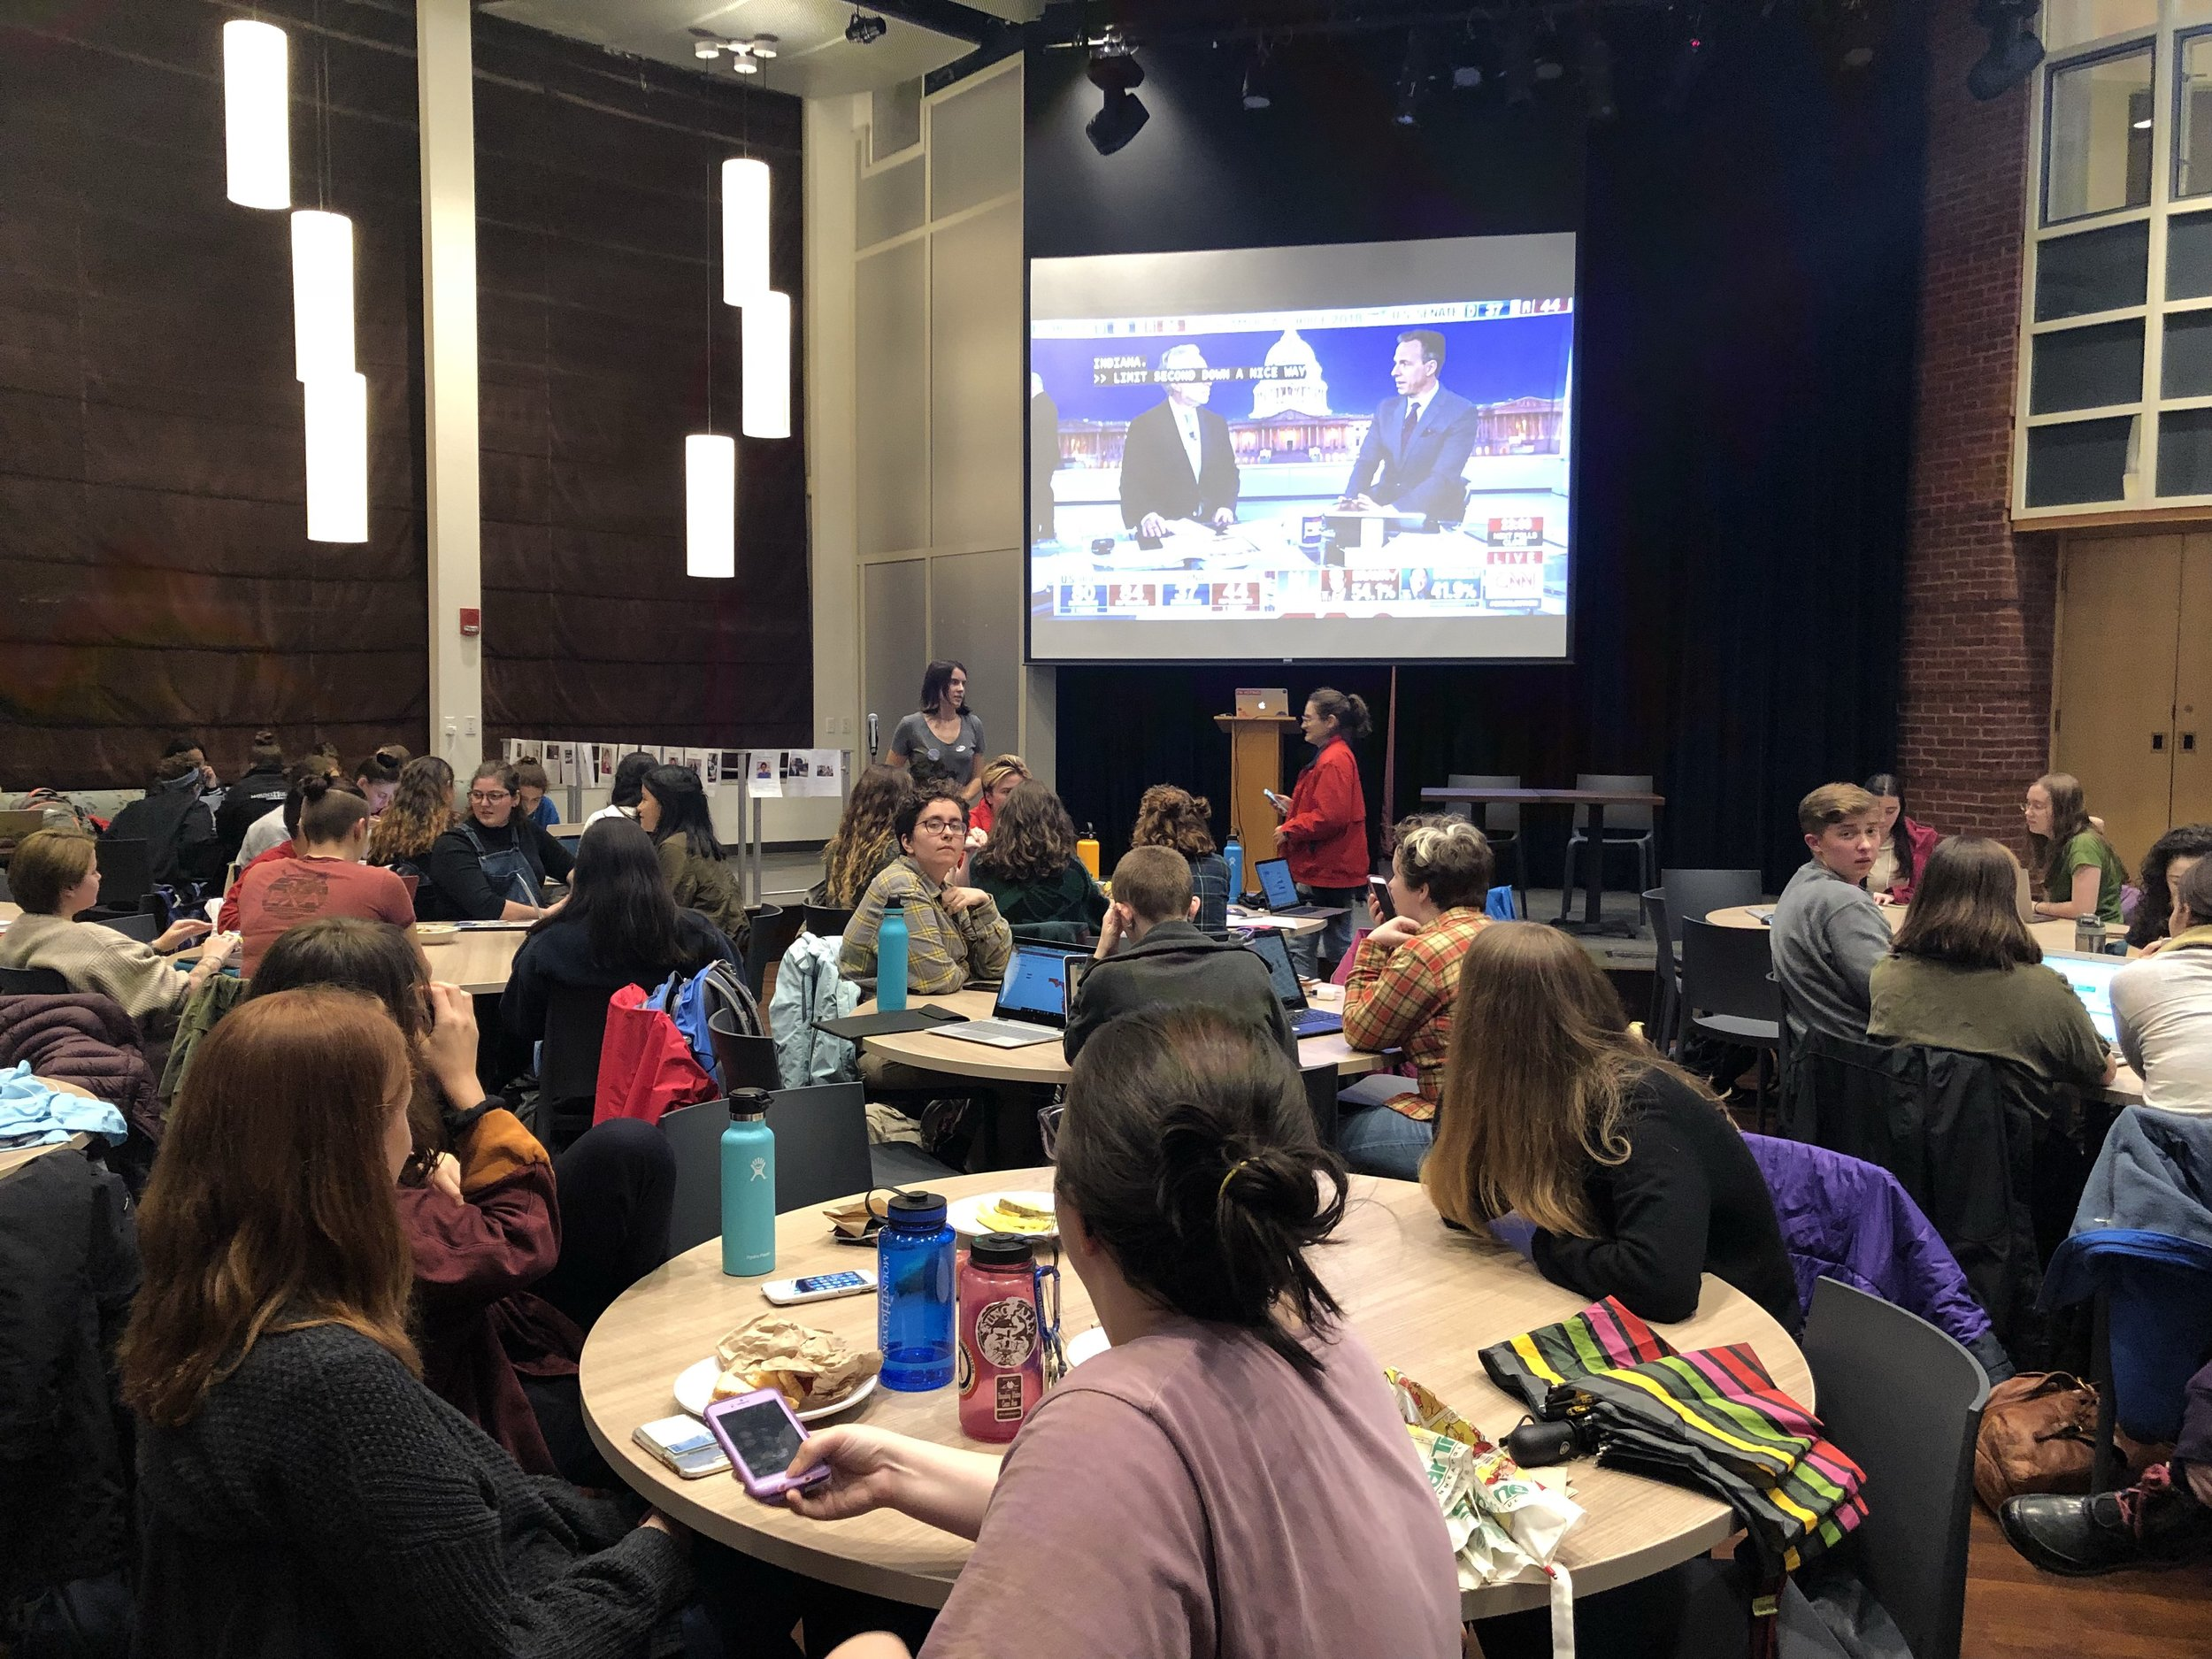 Photo courtesy of Lili Paxton '21   Students attended an election results viewing party hosted by the Mount Holyoke College Democrats on Nov. 6